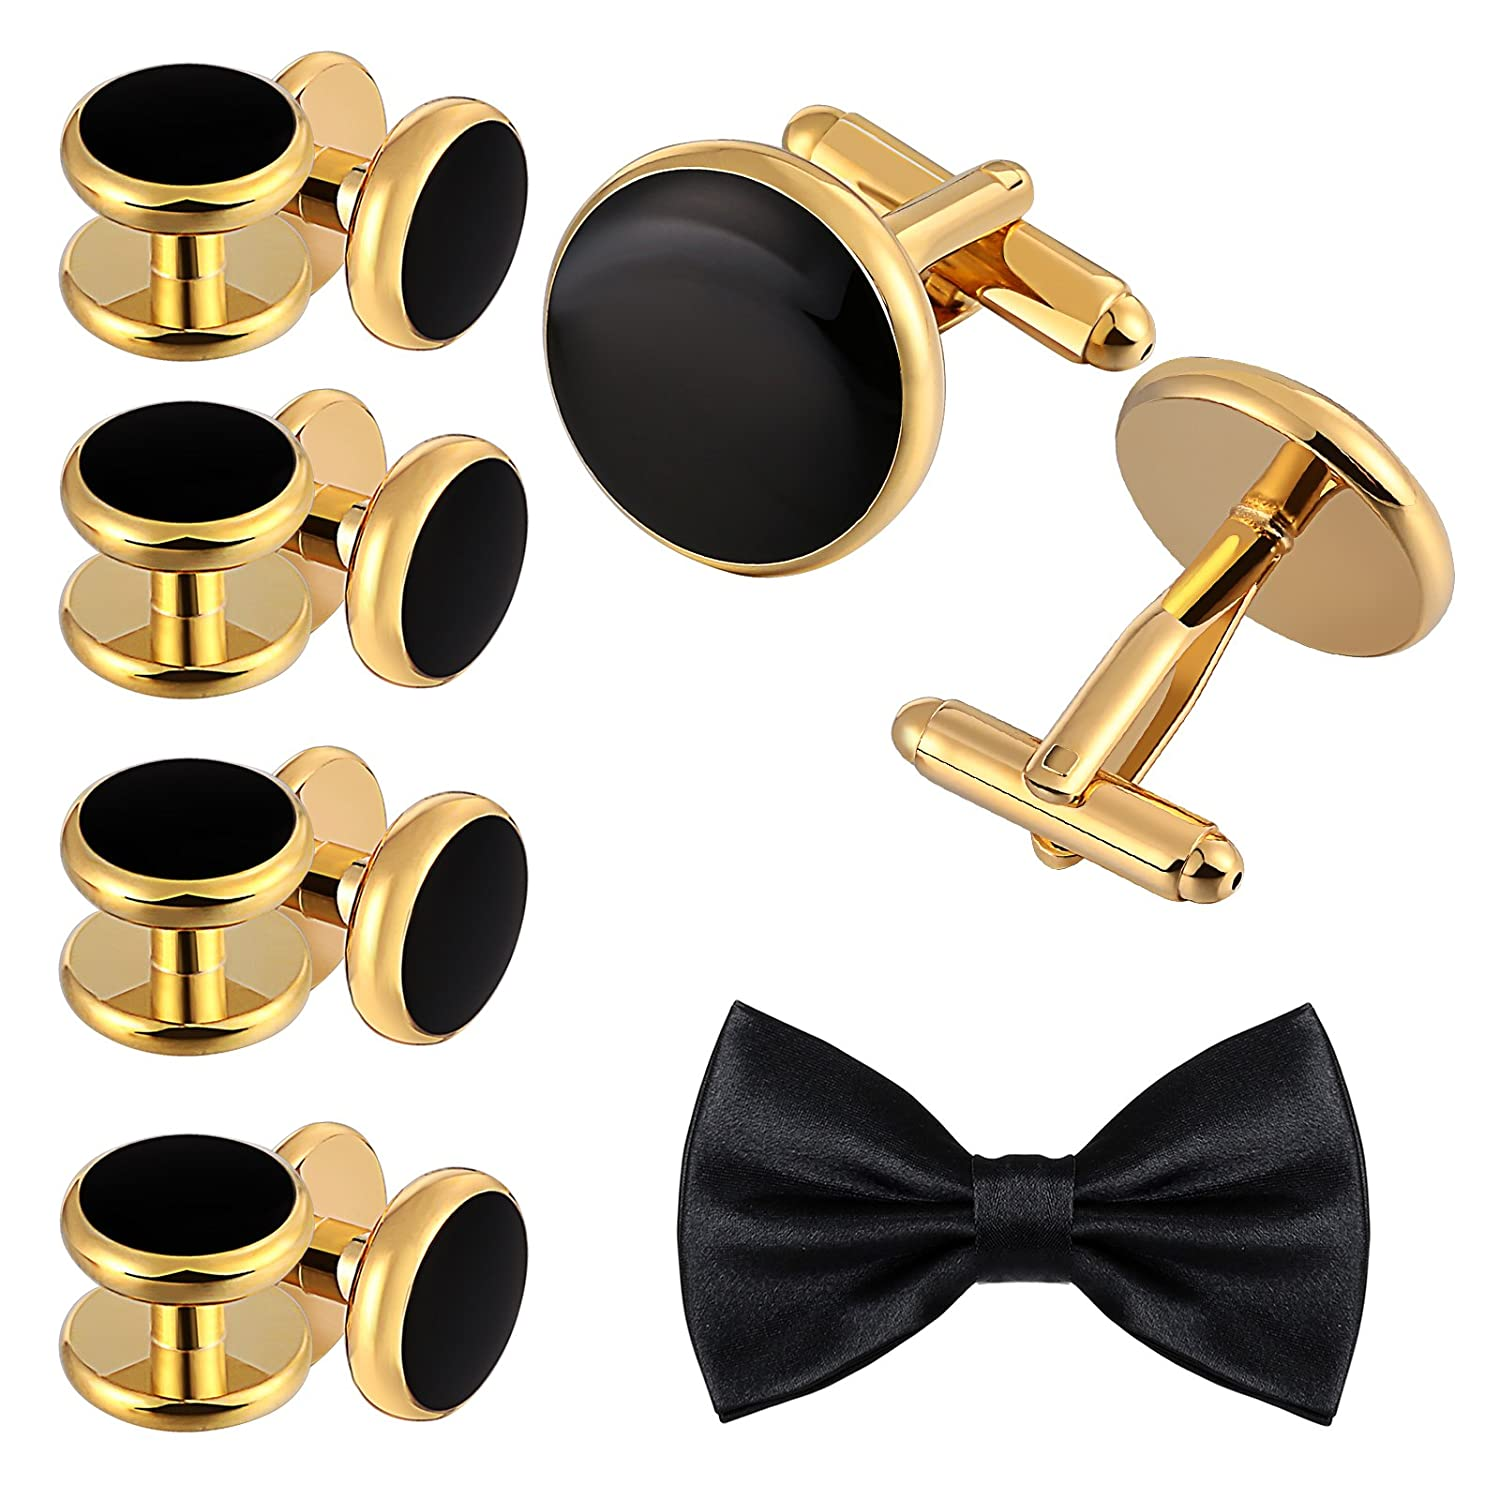 d084bb7db The set includes 2 cufflinks with 8 studs and 1 bow tie. •Silver  Black/Silver Bule/Gold Black round classic cufflinks and ...